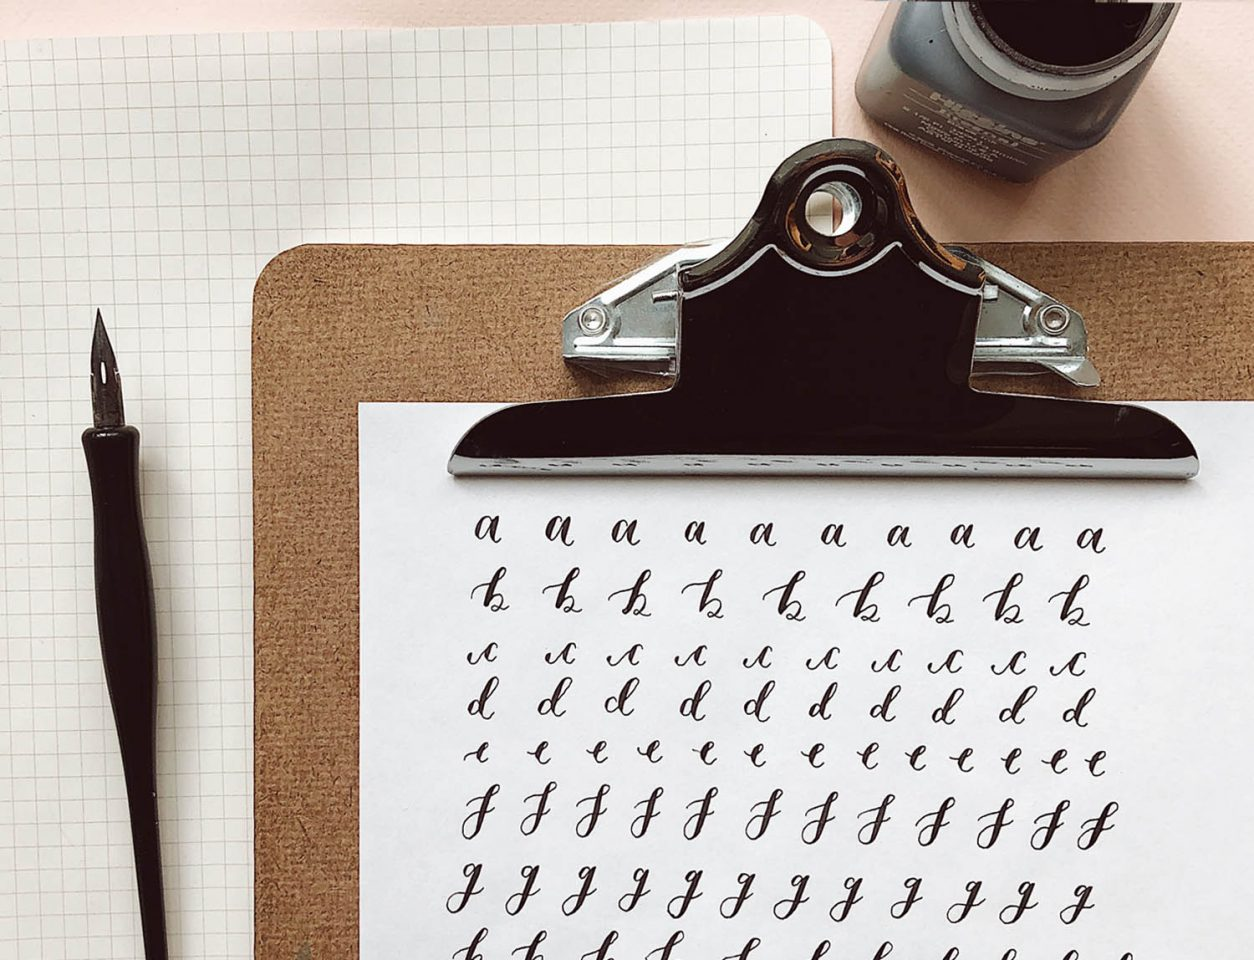 A clipboard with a hand-alphabet on paper written in ink